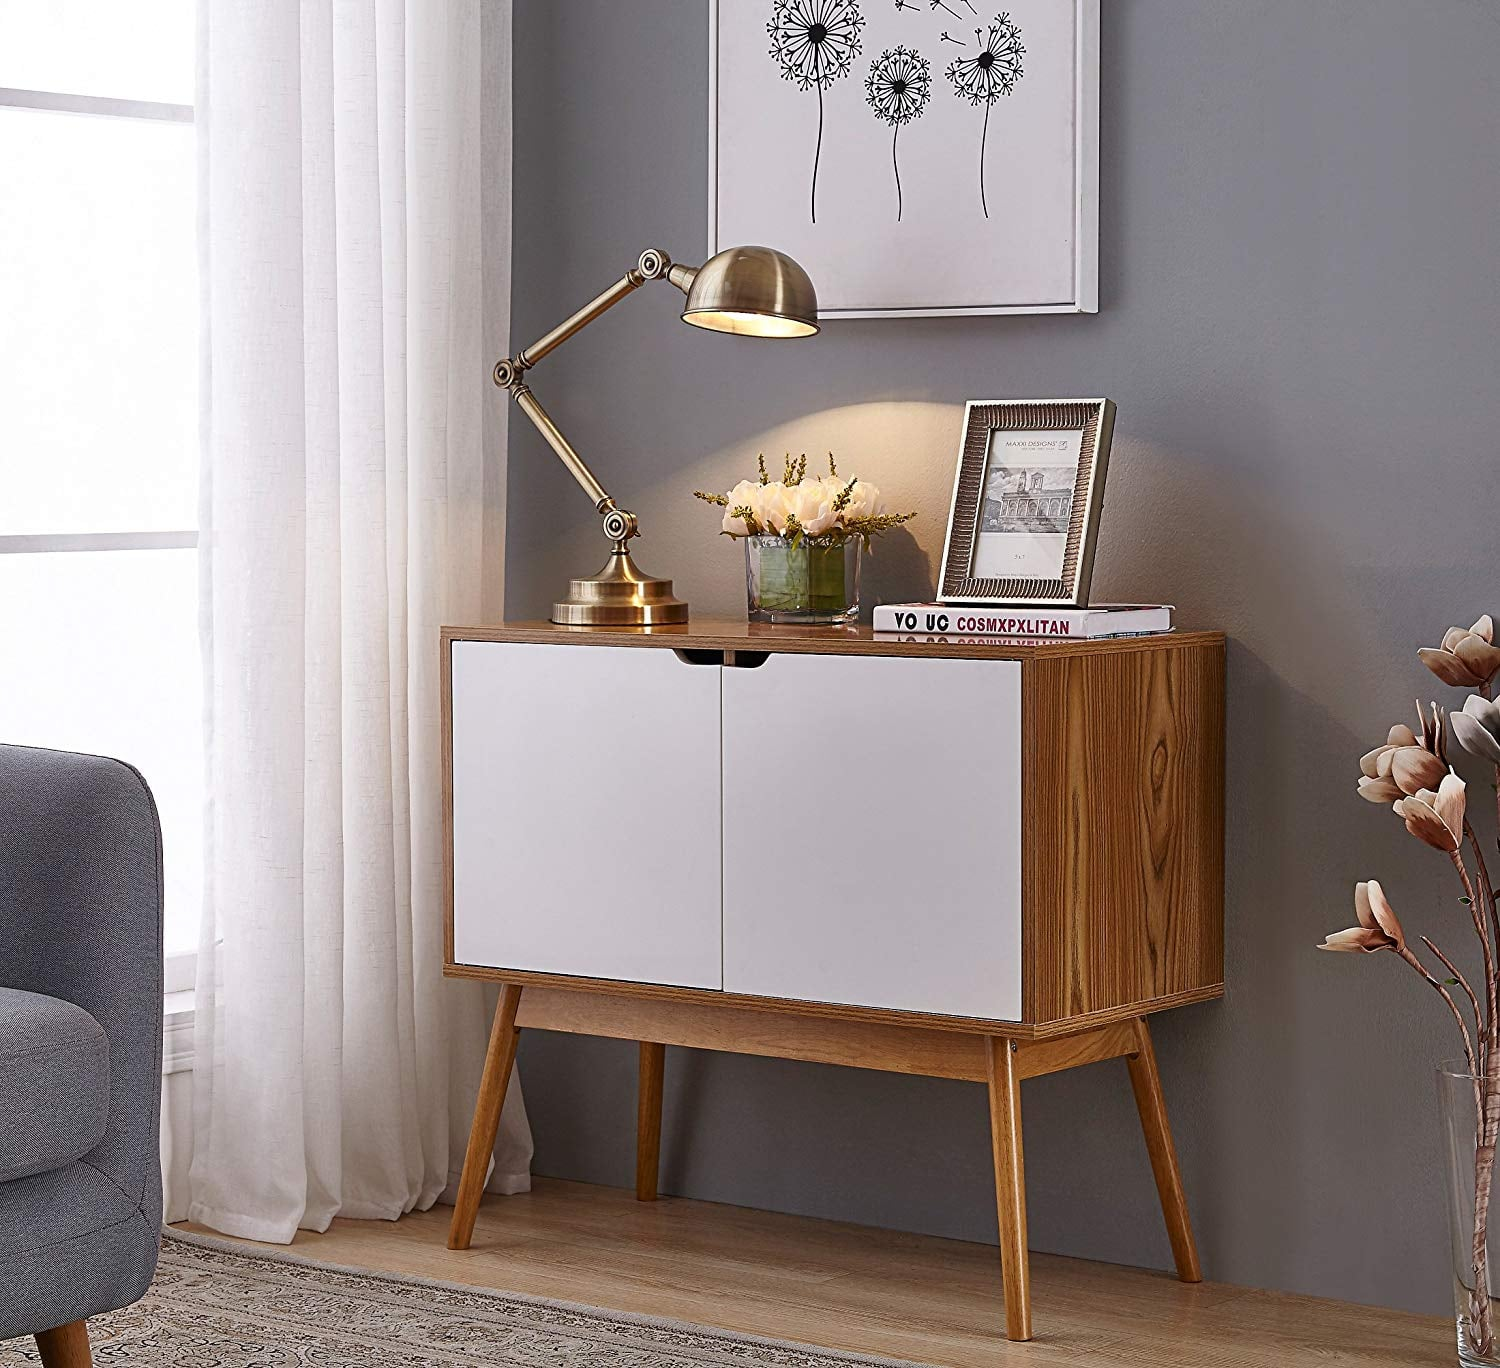 Console Table Storage Cabinet The 50 Best Furniture Pieces You Can Shop On The Internet For Under 200 Popsugar Home Photo 14